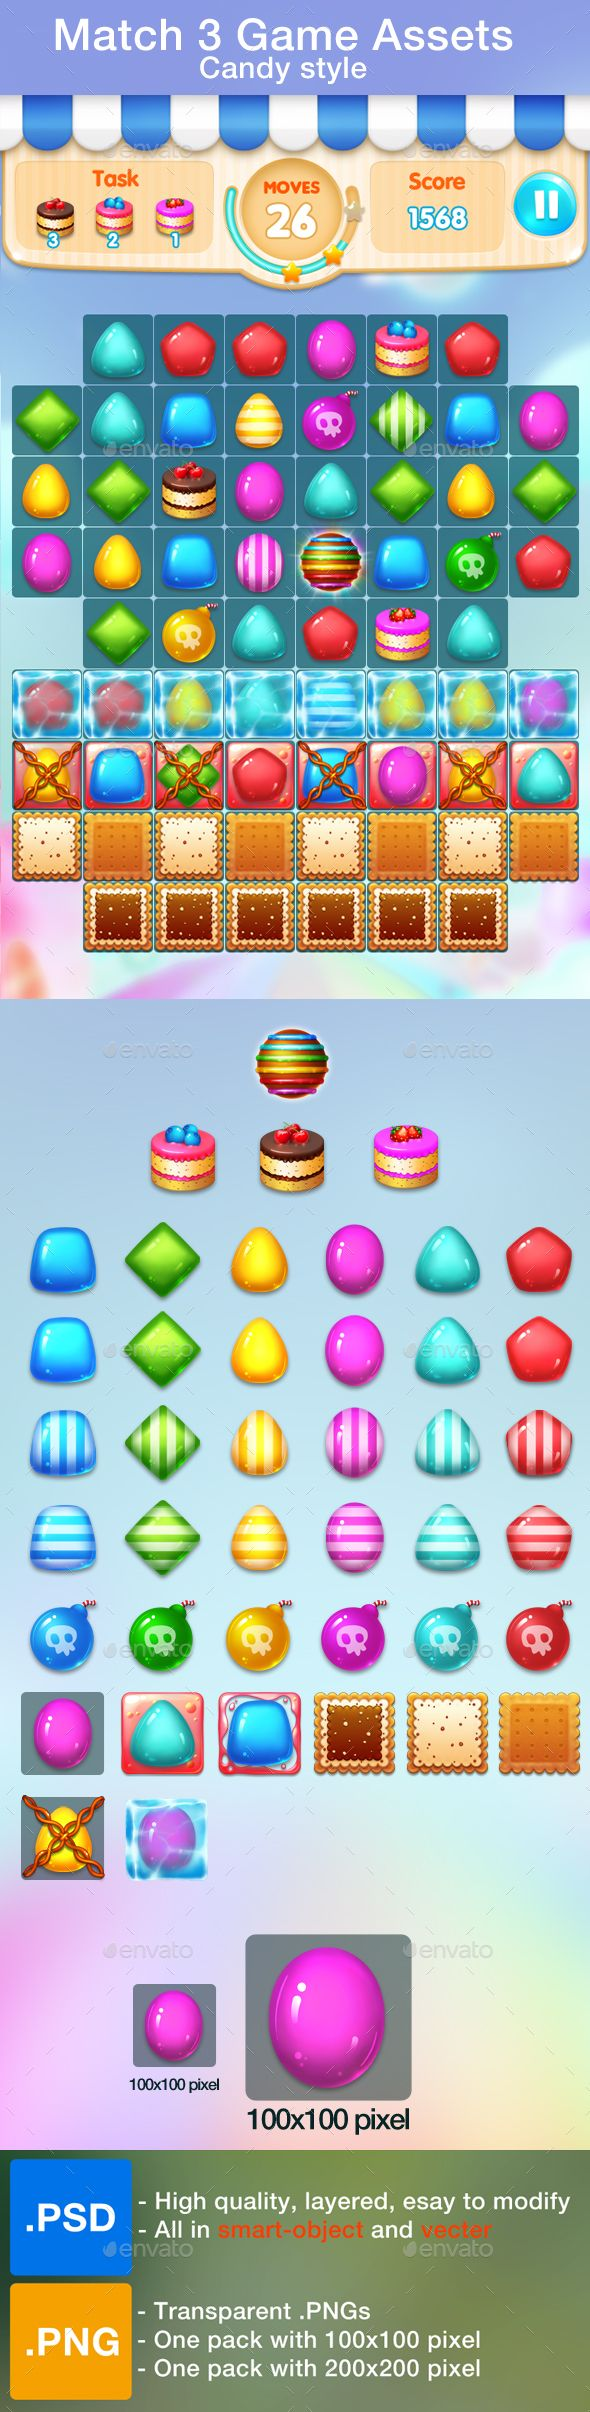 Match 3 Game Assets - All items needed for match 3 game in candy style  - 6 different candies with normal, bright, vertical and horizontal powered  - Included: 2 tiles , 3 levels cookie block ( lock and ice ) , 3 special items…  - All in high quality.